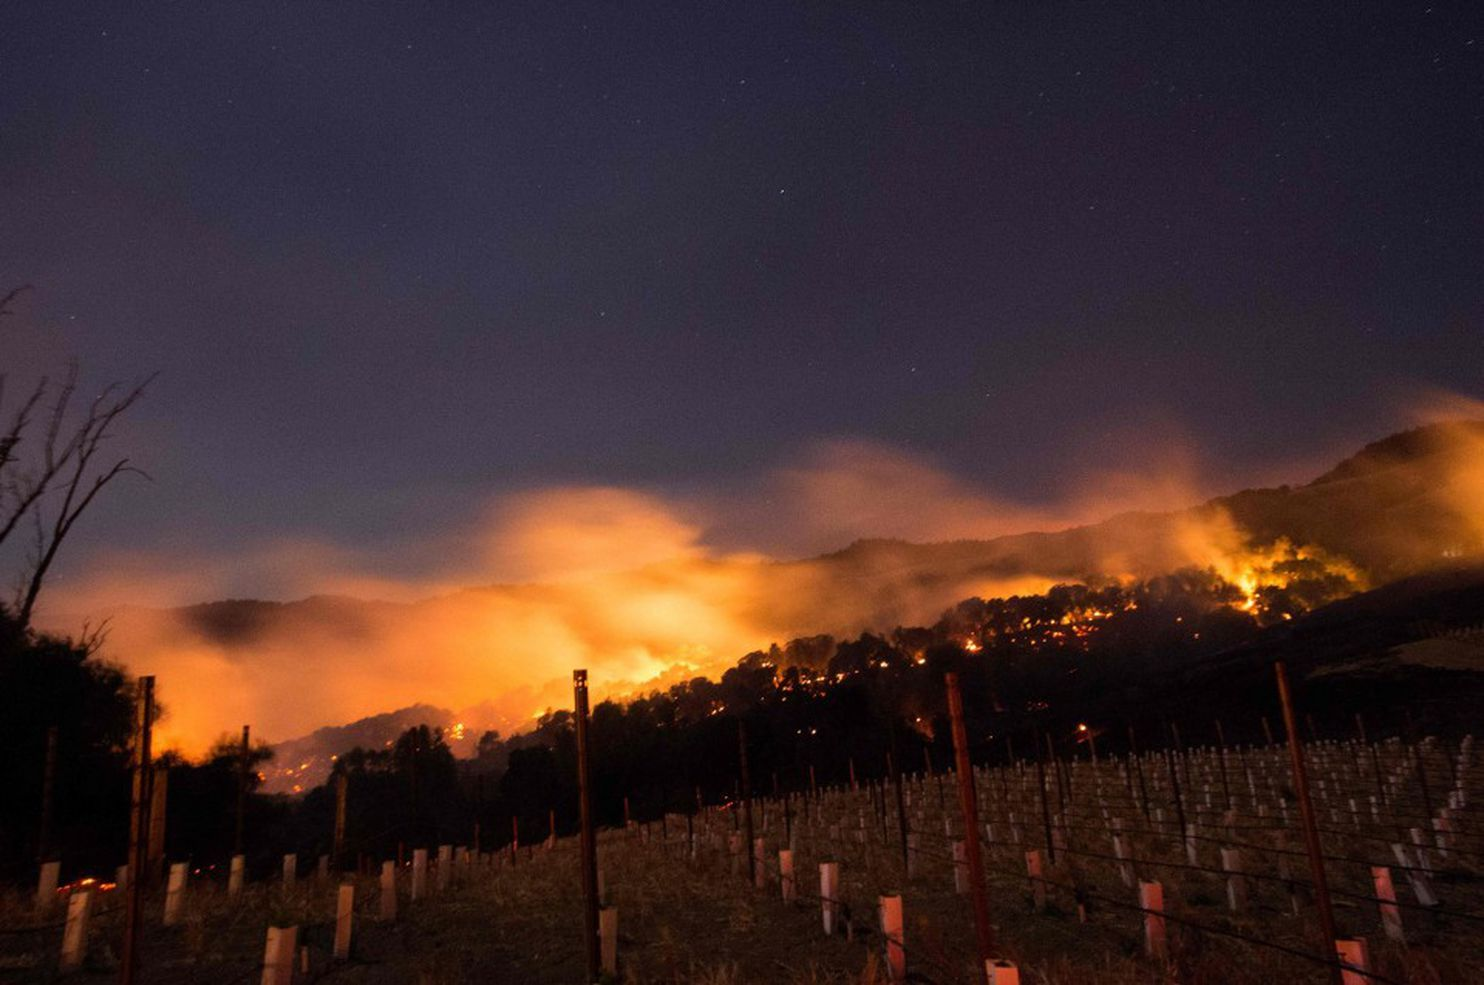 napa-sonoma-santa-rosa-fires-ravage-northern-californias-wine-country-TheNewsTrend.jpg